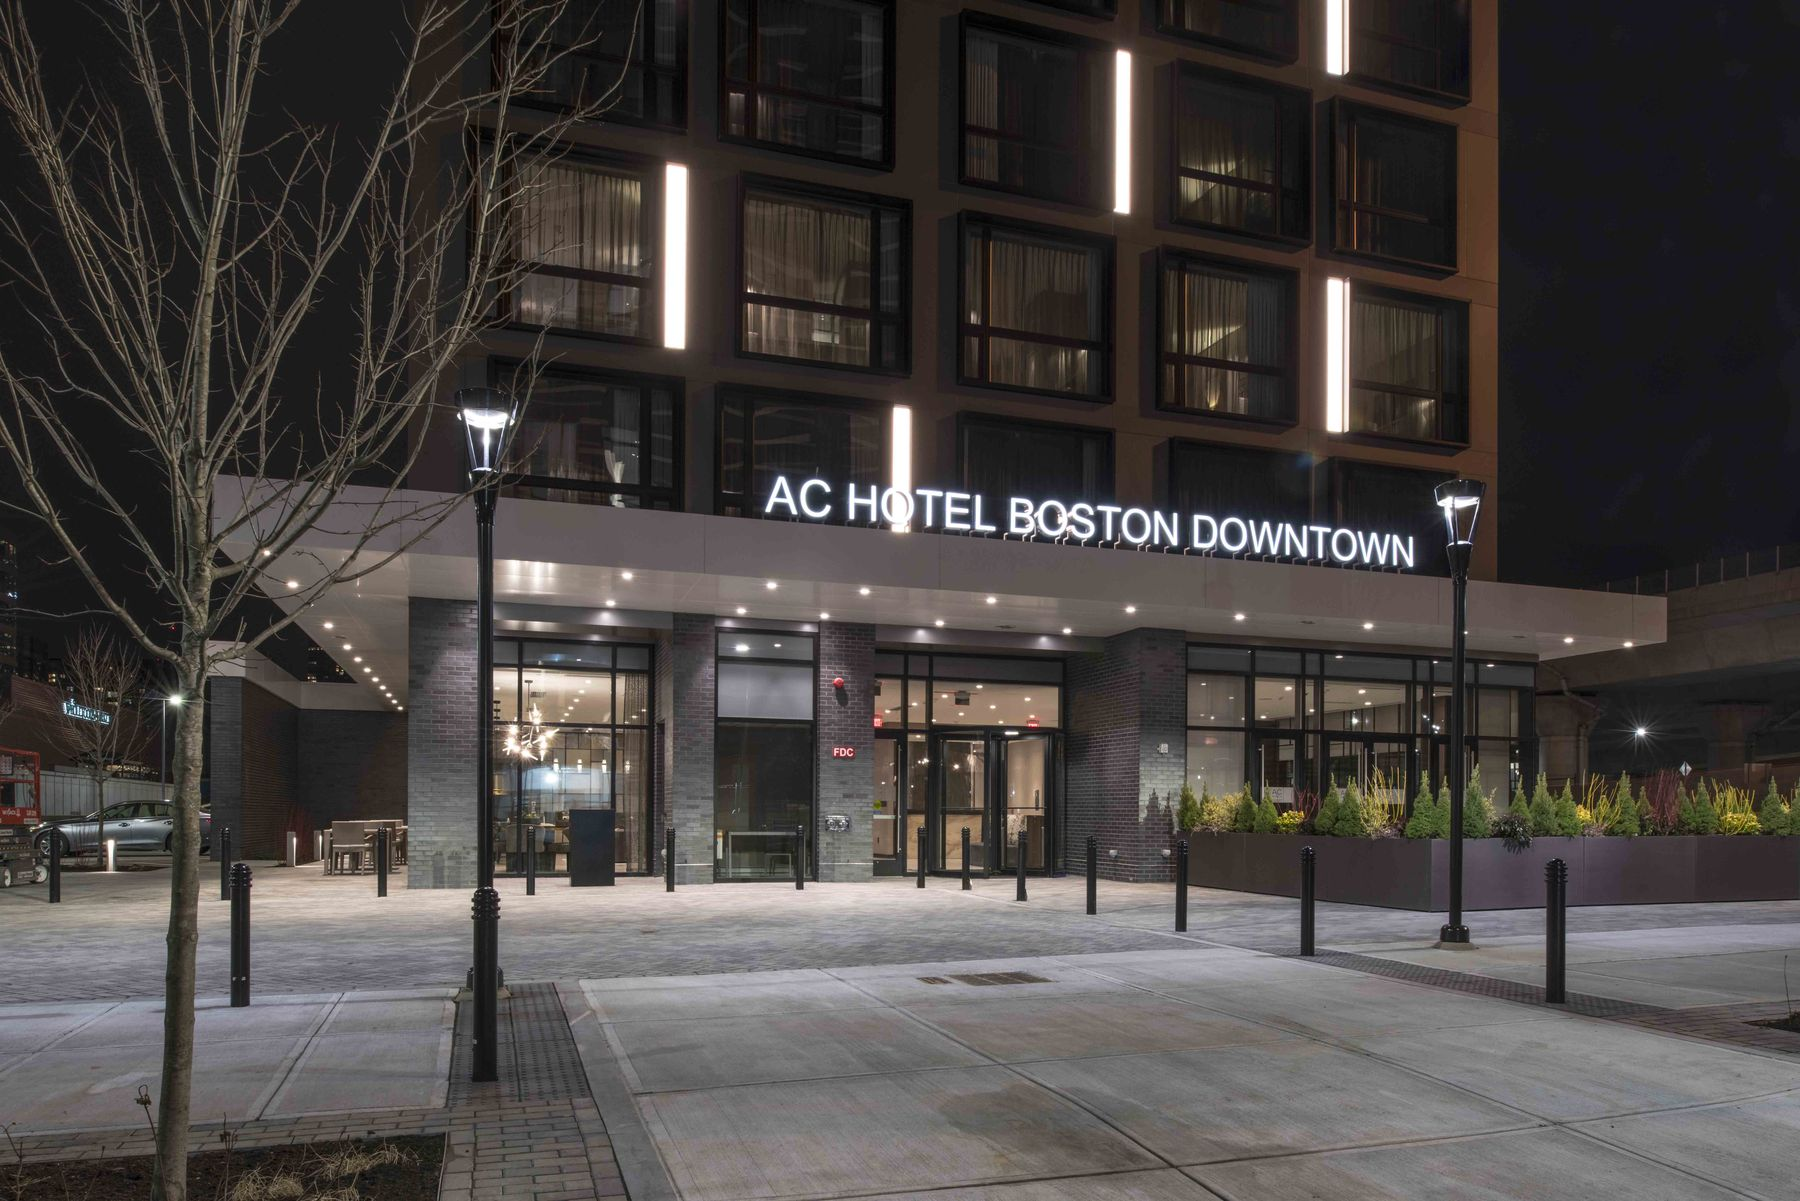 Exterior of AC Hotel Boston Downtown at night